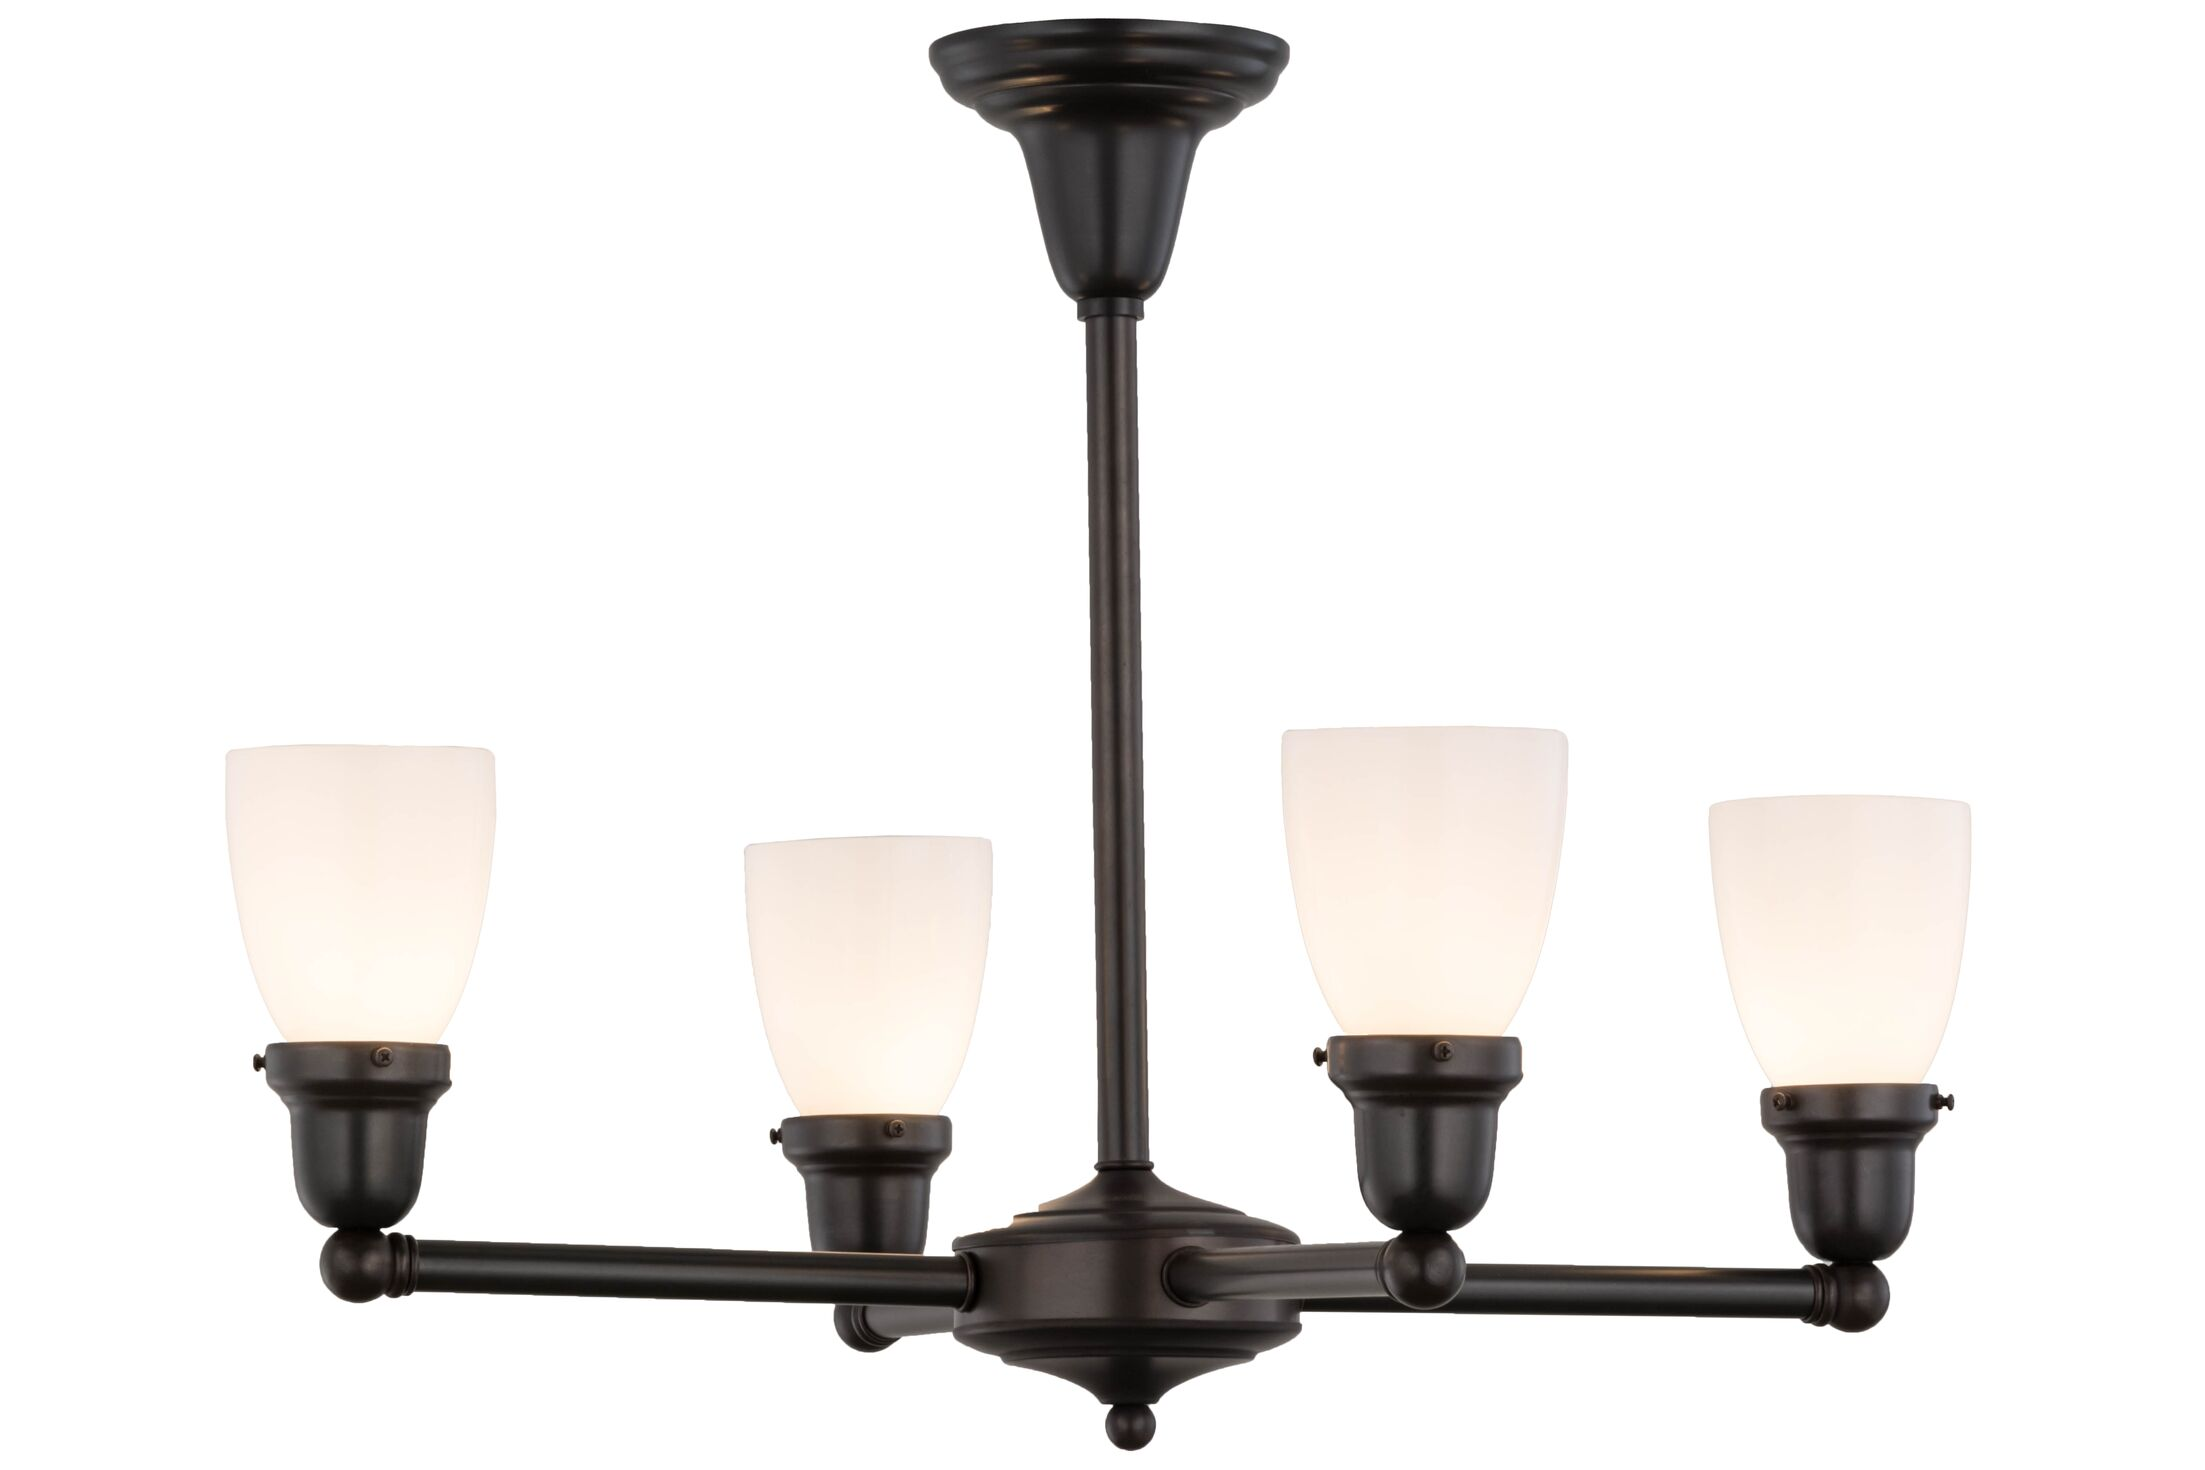 Revival Oyster Bay Goblet 4-Light Shaded Chandelier Finish: Craftsman Brown